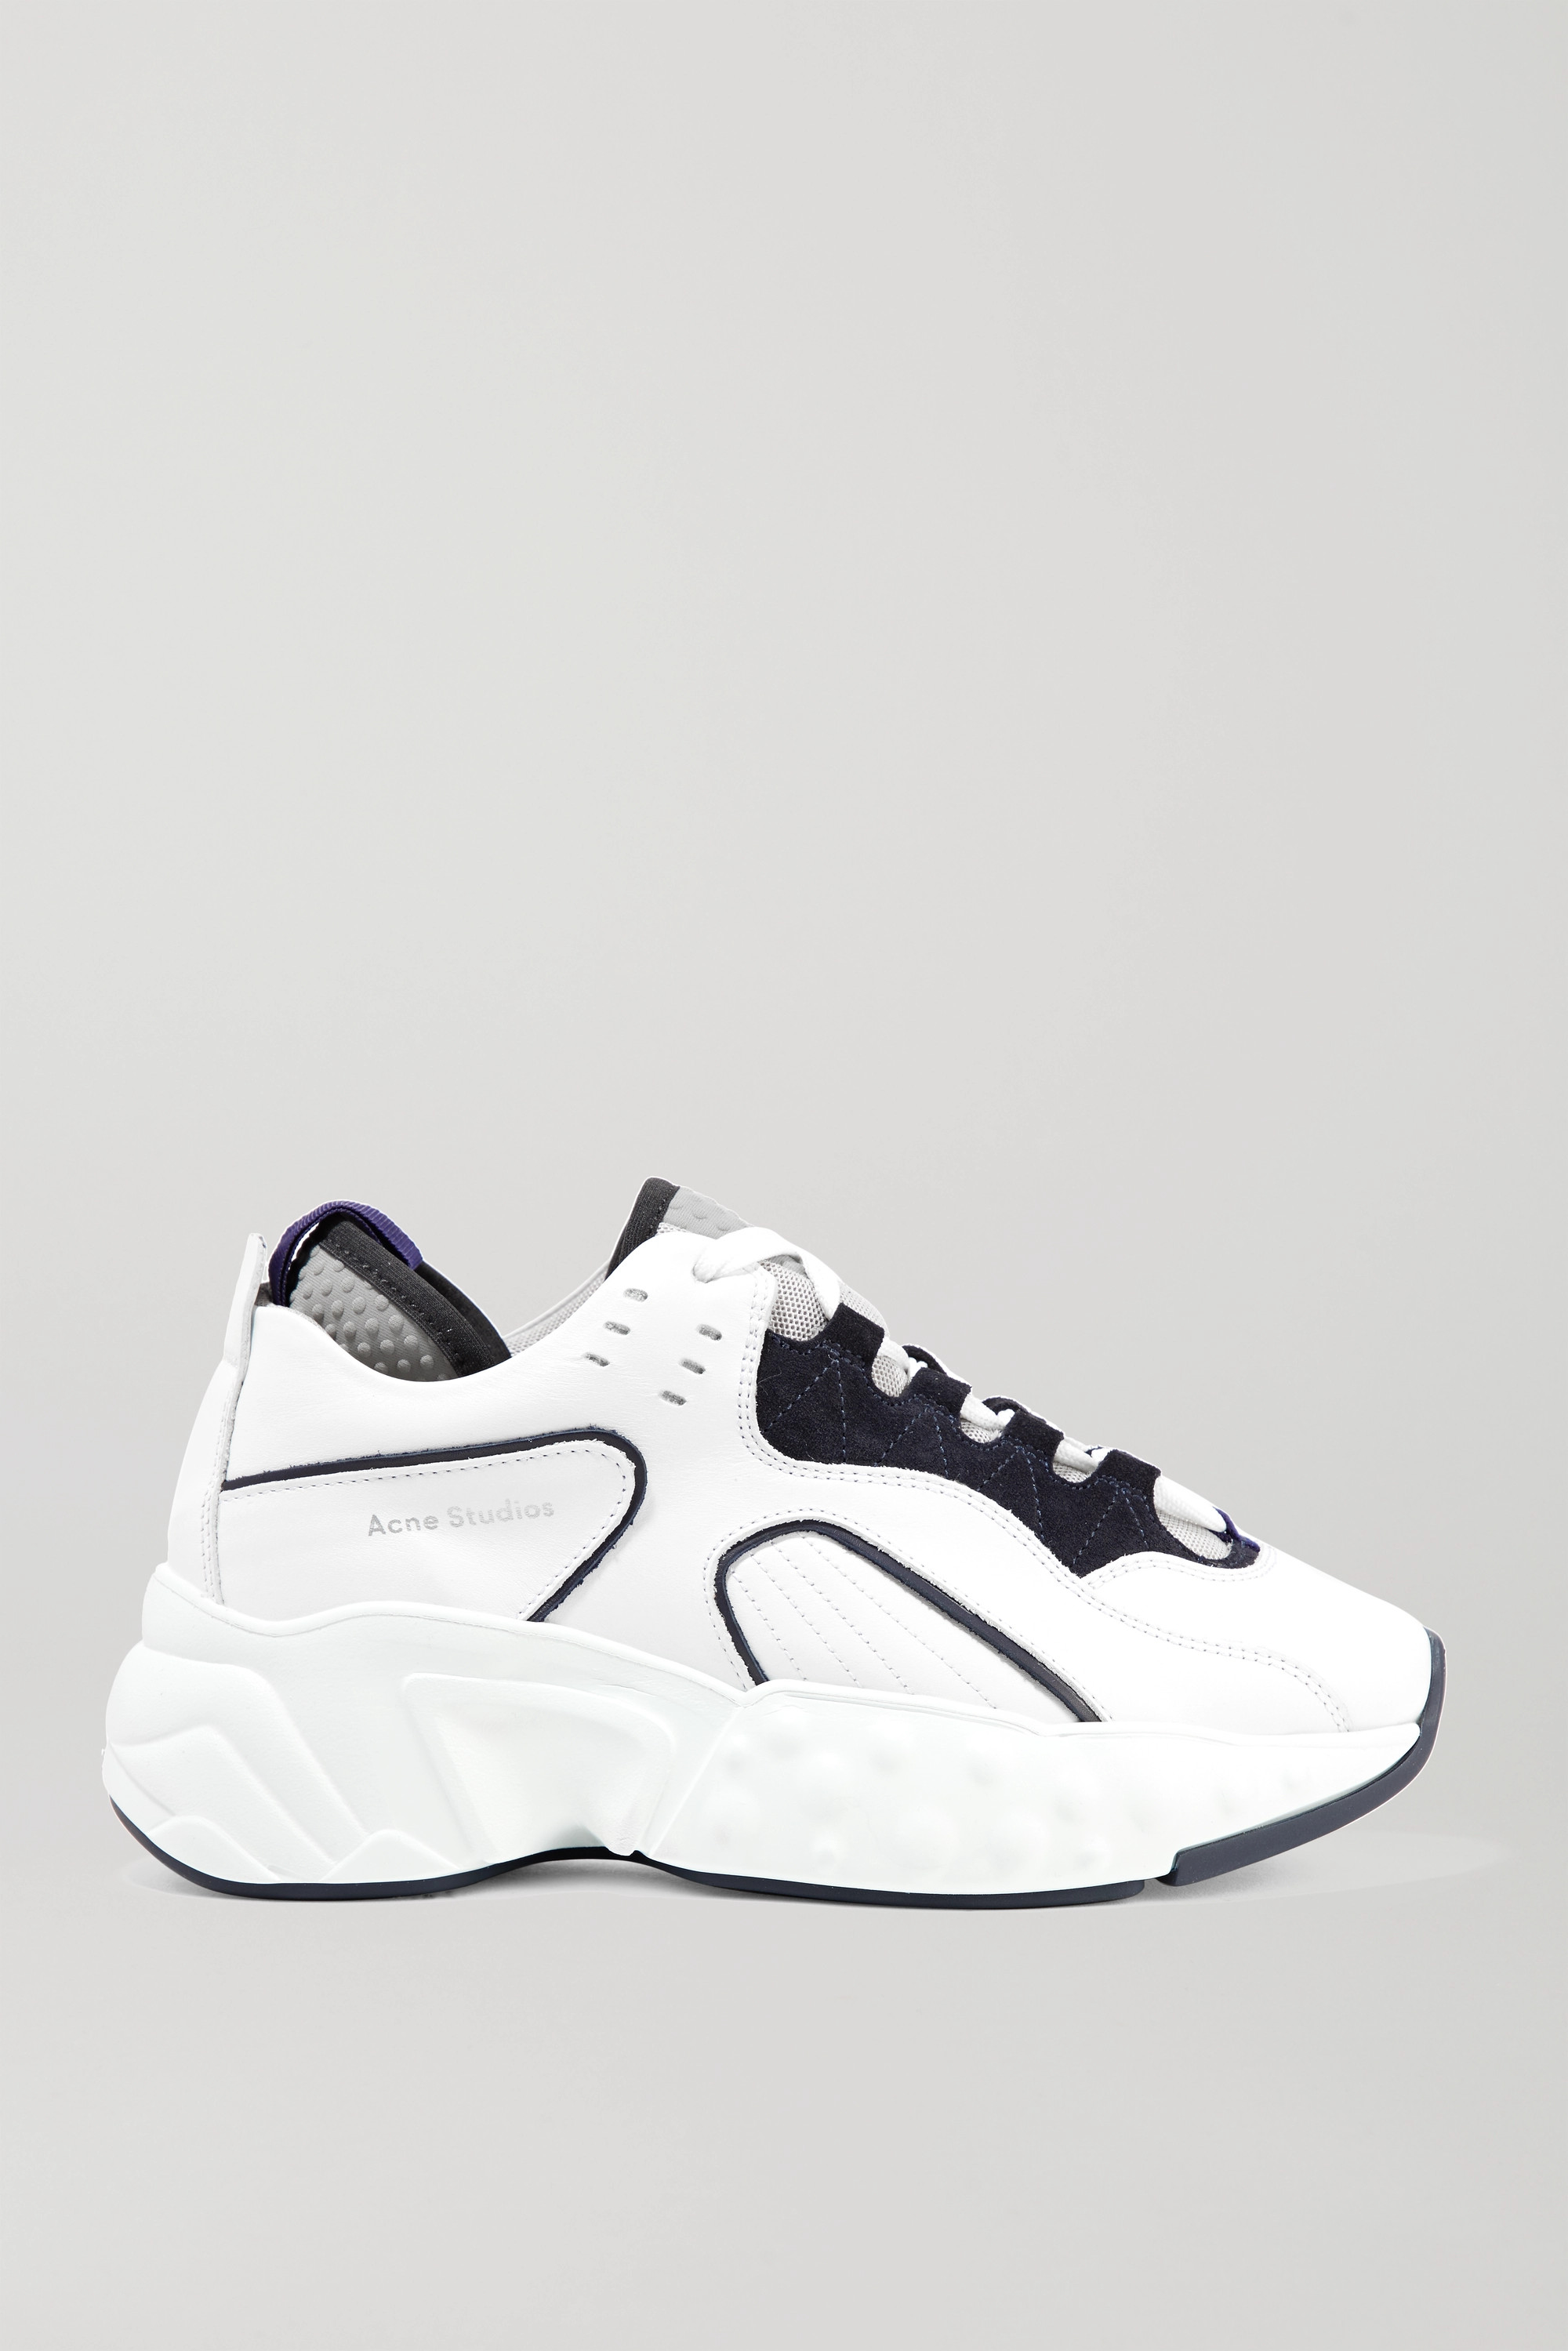 Acne Studios Leather, suede and mesh sneakers